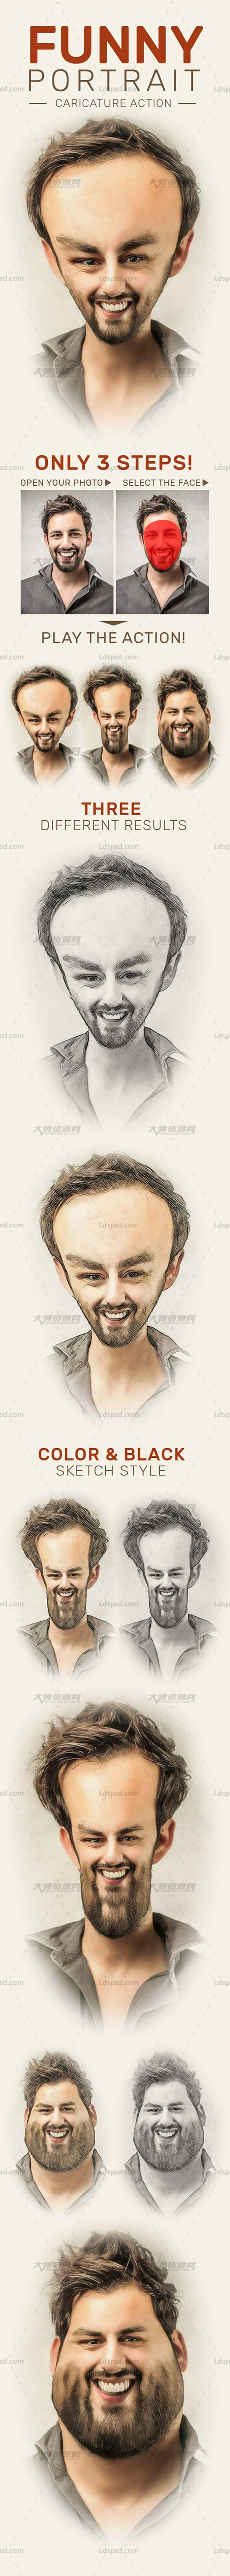 Funny Portrait Caricature Action,极品PS动作-滑稽画象(含PDF图文教程)